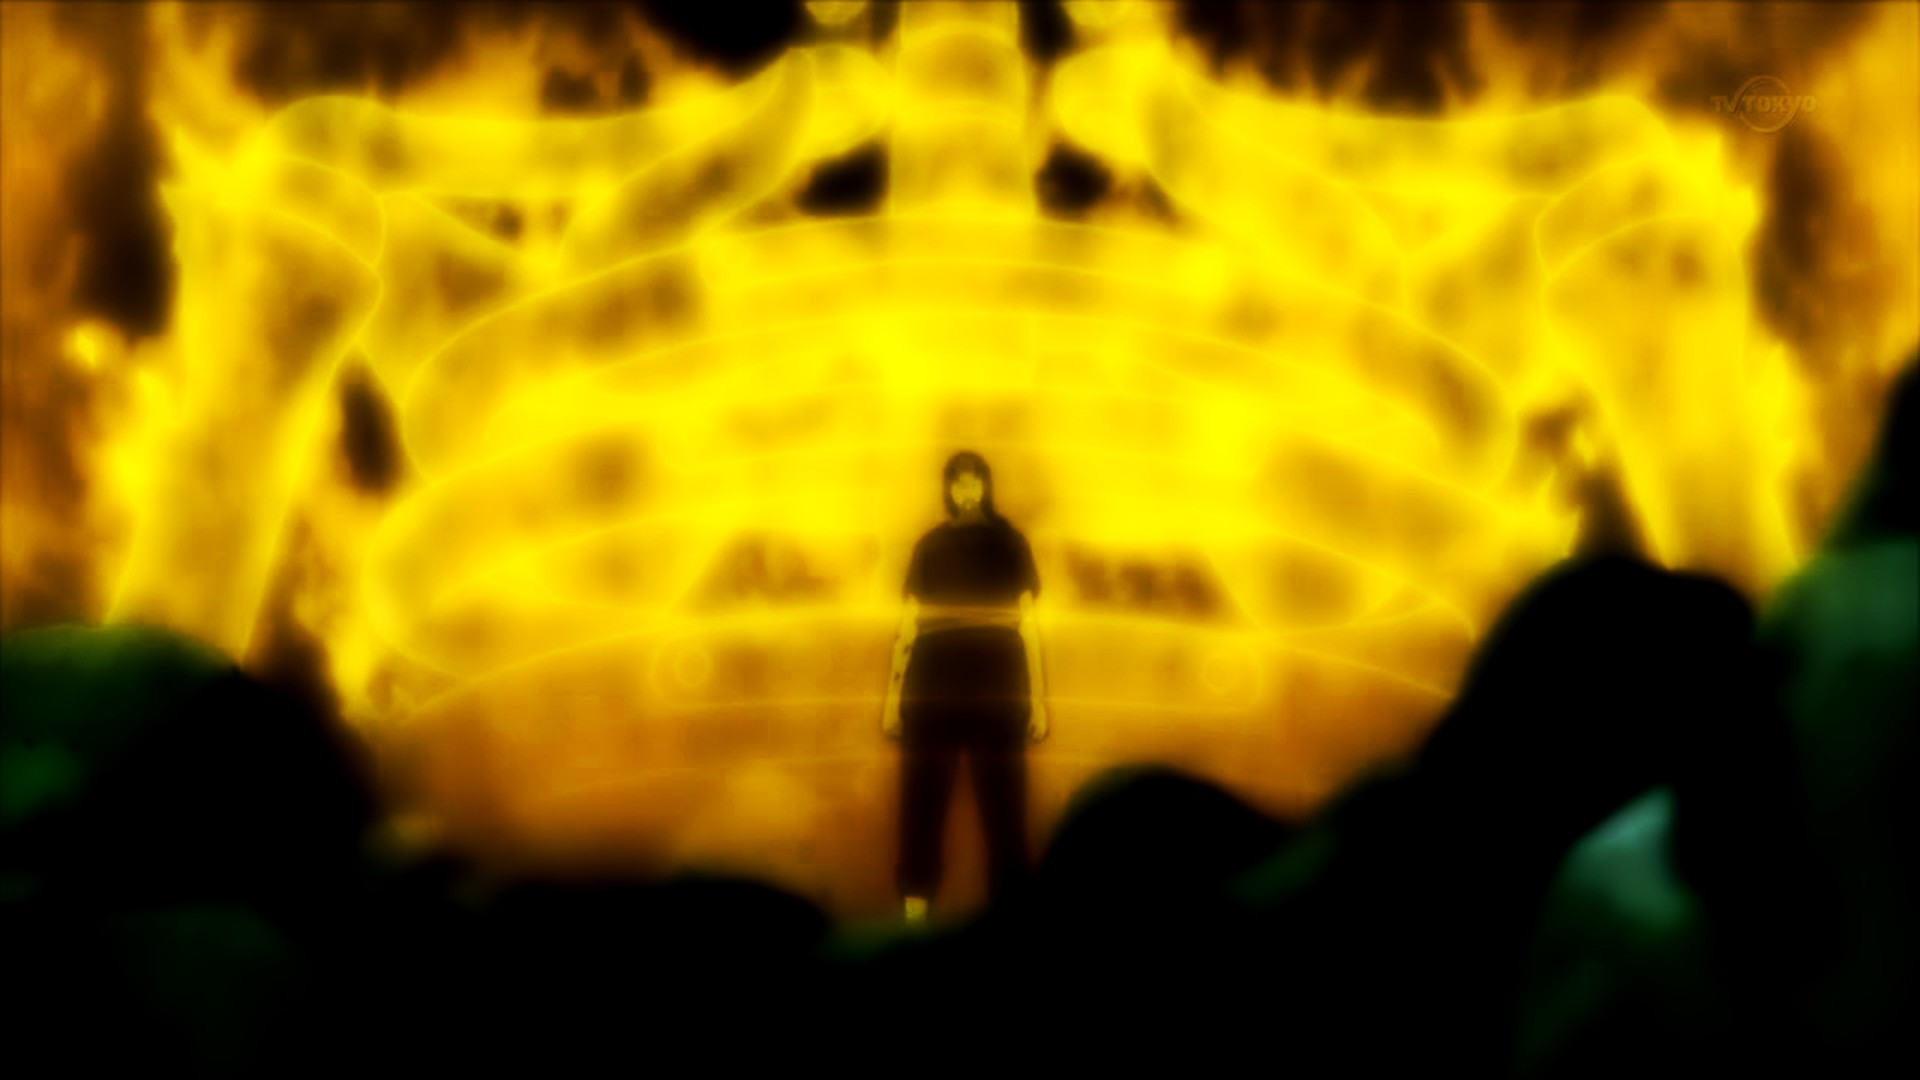 Iphone 4a Wallpaper Itachi Susanoo Wallpaper 63 Images